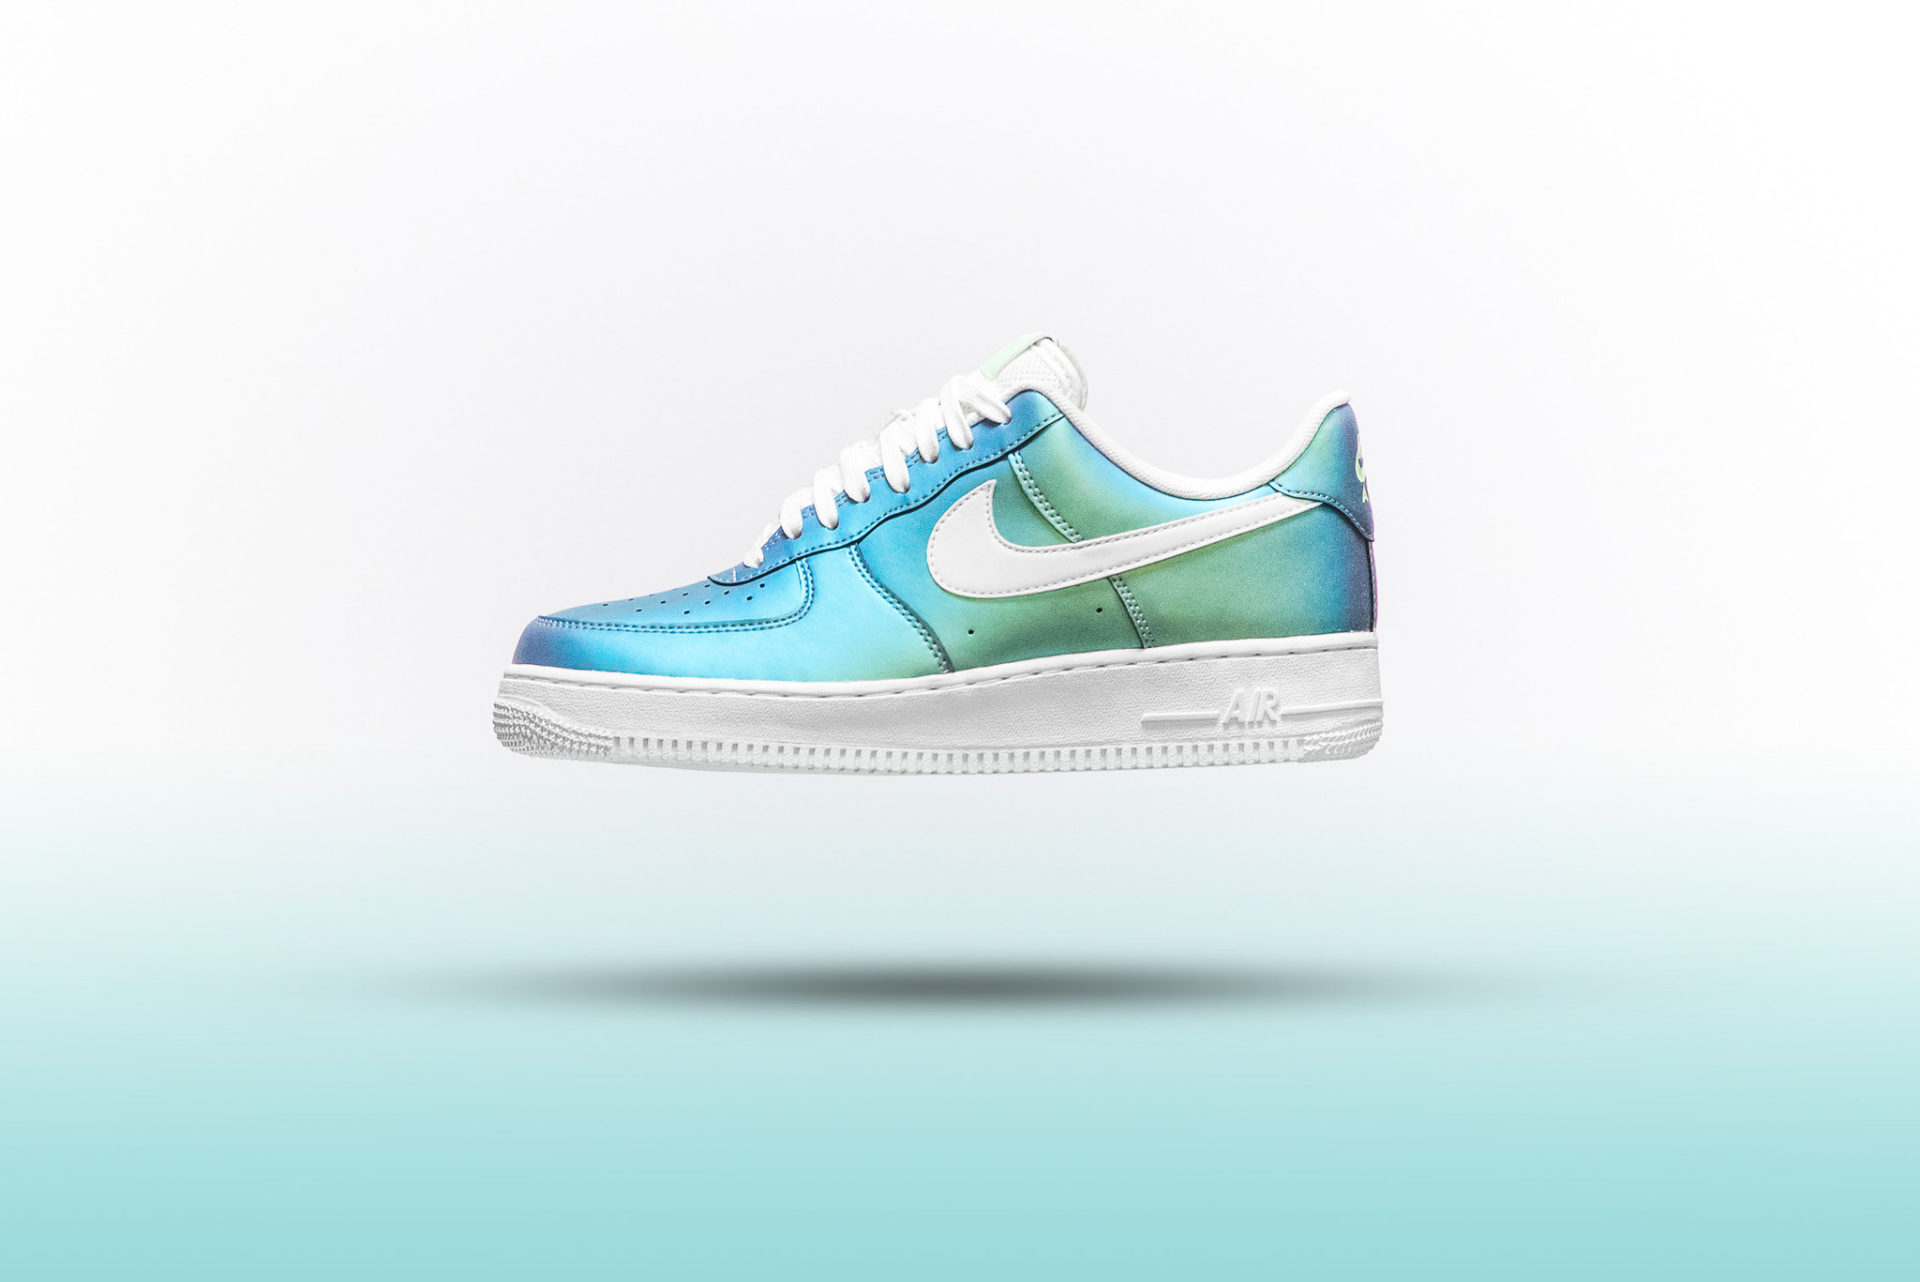 check out 58edc 0b50c closeout nike air force 1 low fresh mint de7a6 2cea5